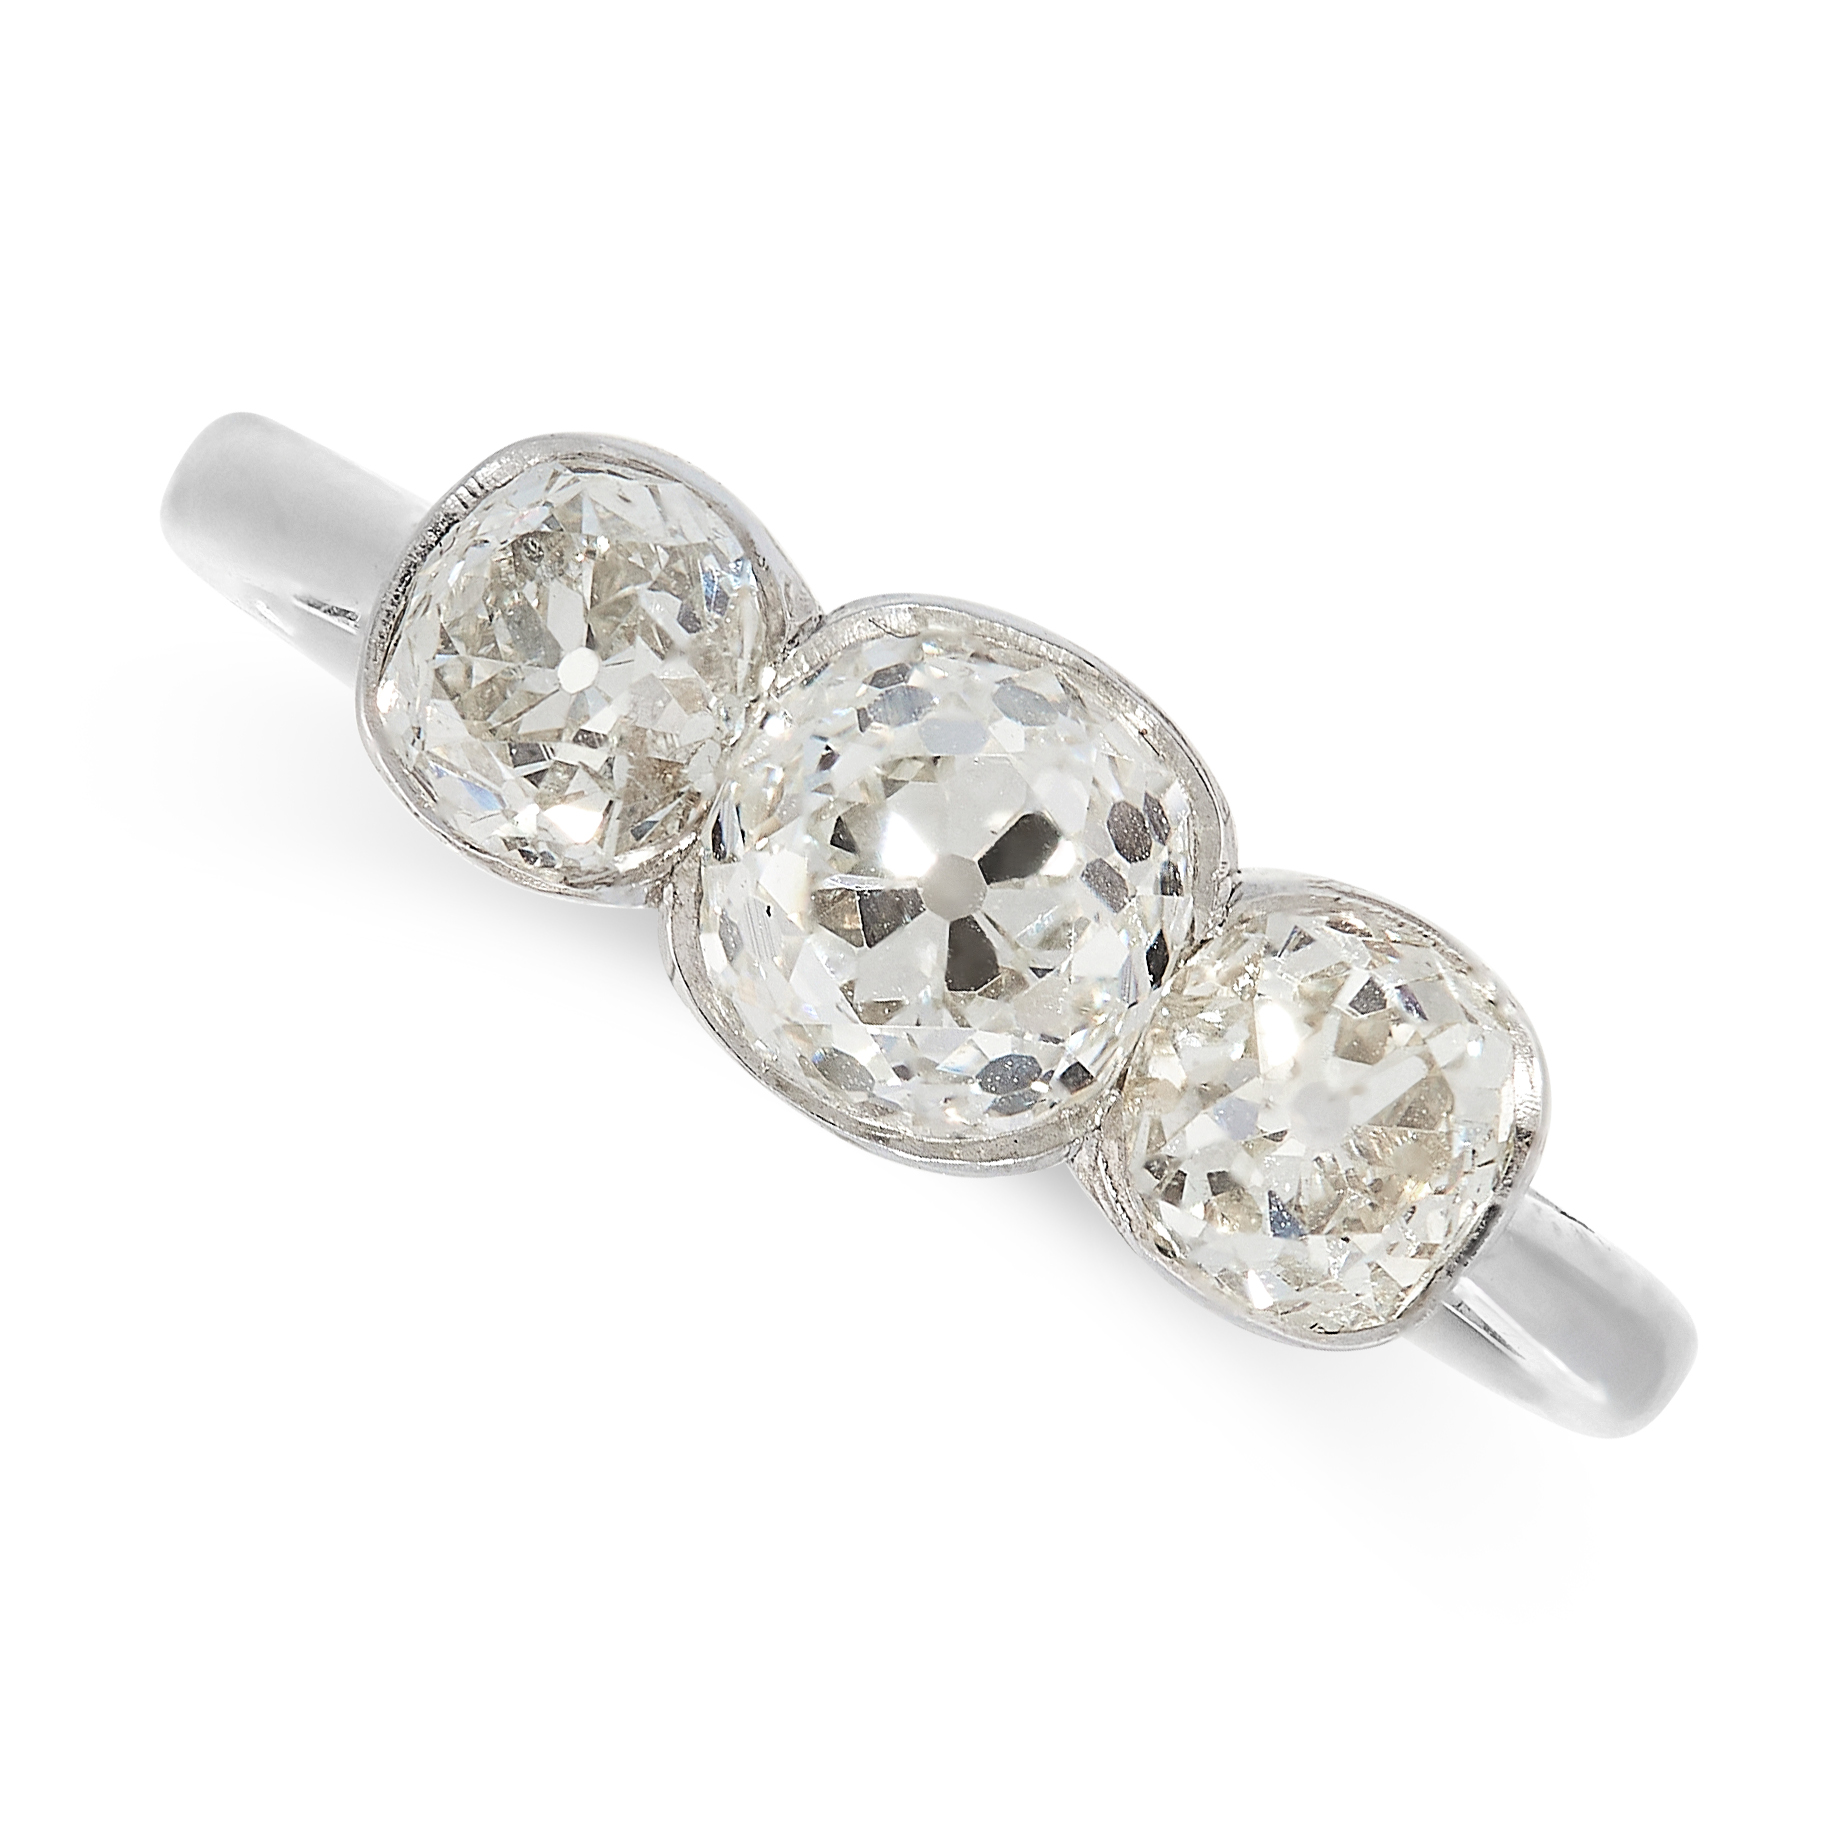 DIAMOND THREE STONE RING comprising of three old cut diamonds totalling 1.57 carats, French marks,